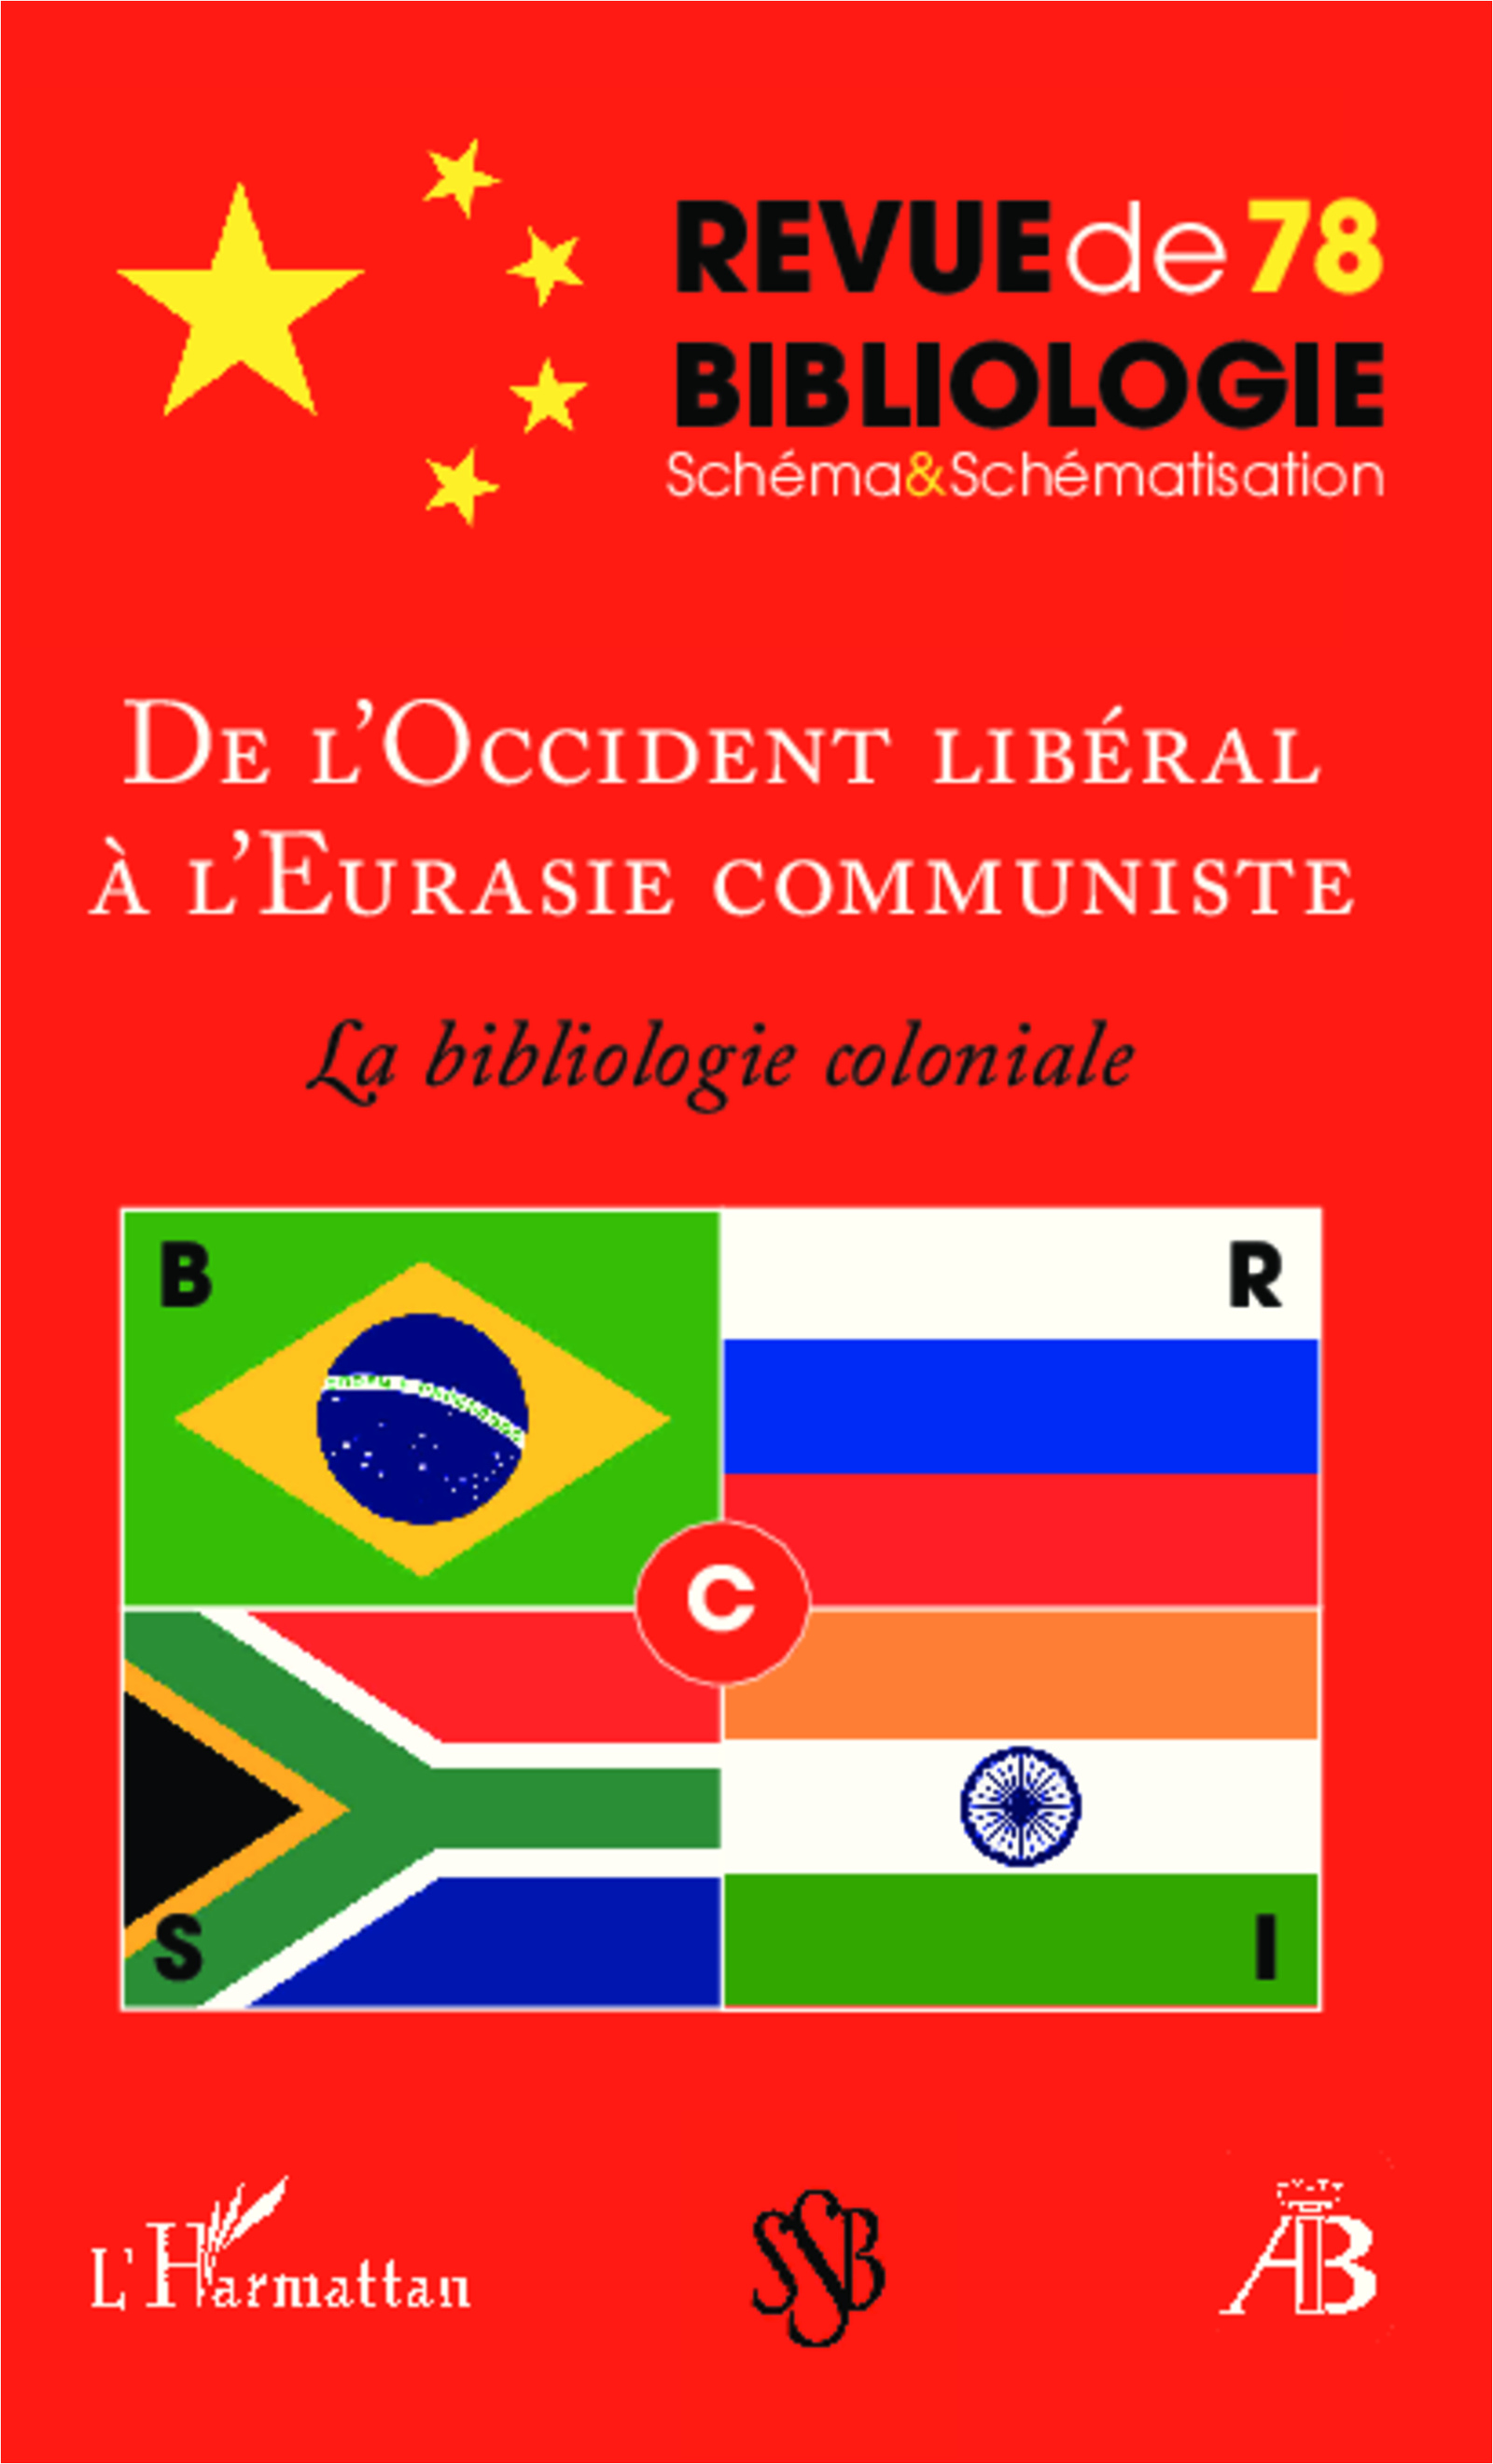 De l'Occident libéral à l'Eurasie communiste